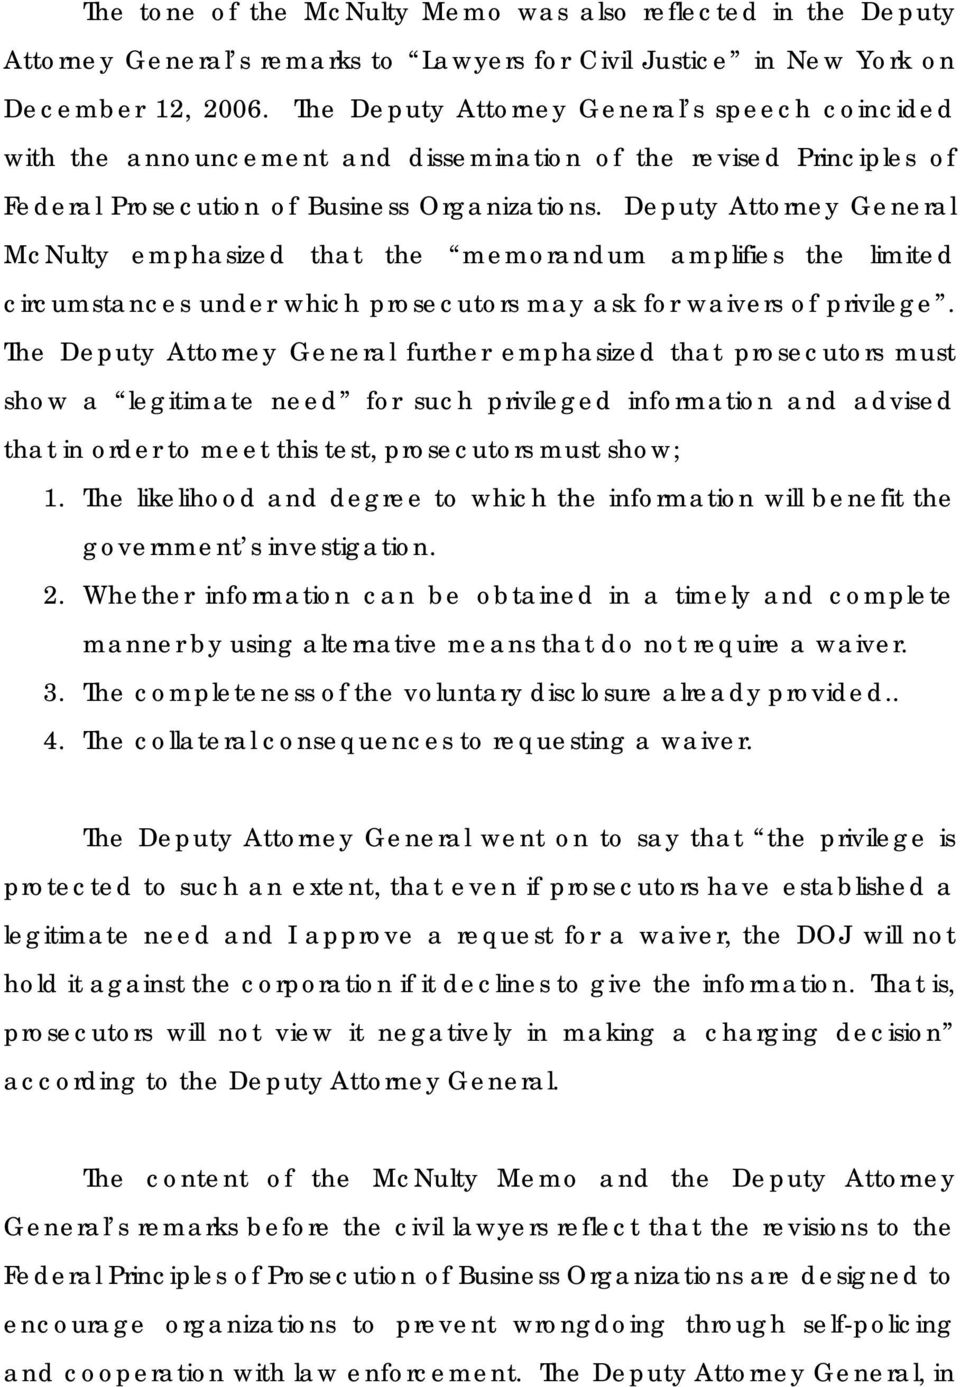 Deputy Attorney General McNulty emphasized that the memorandum amplifies the limited circumstances under which prosecutors may ask for waivers of privilege.